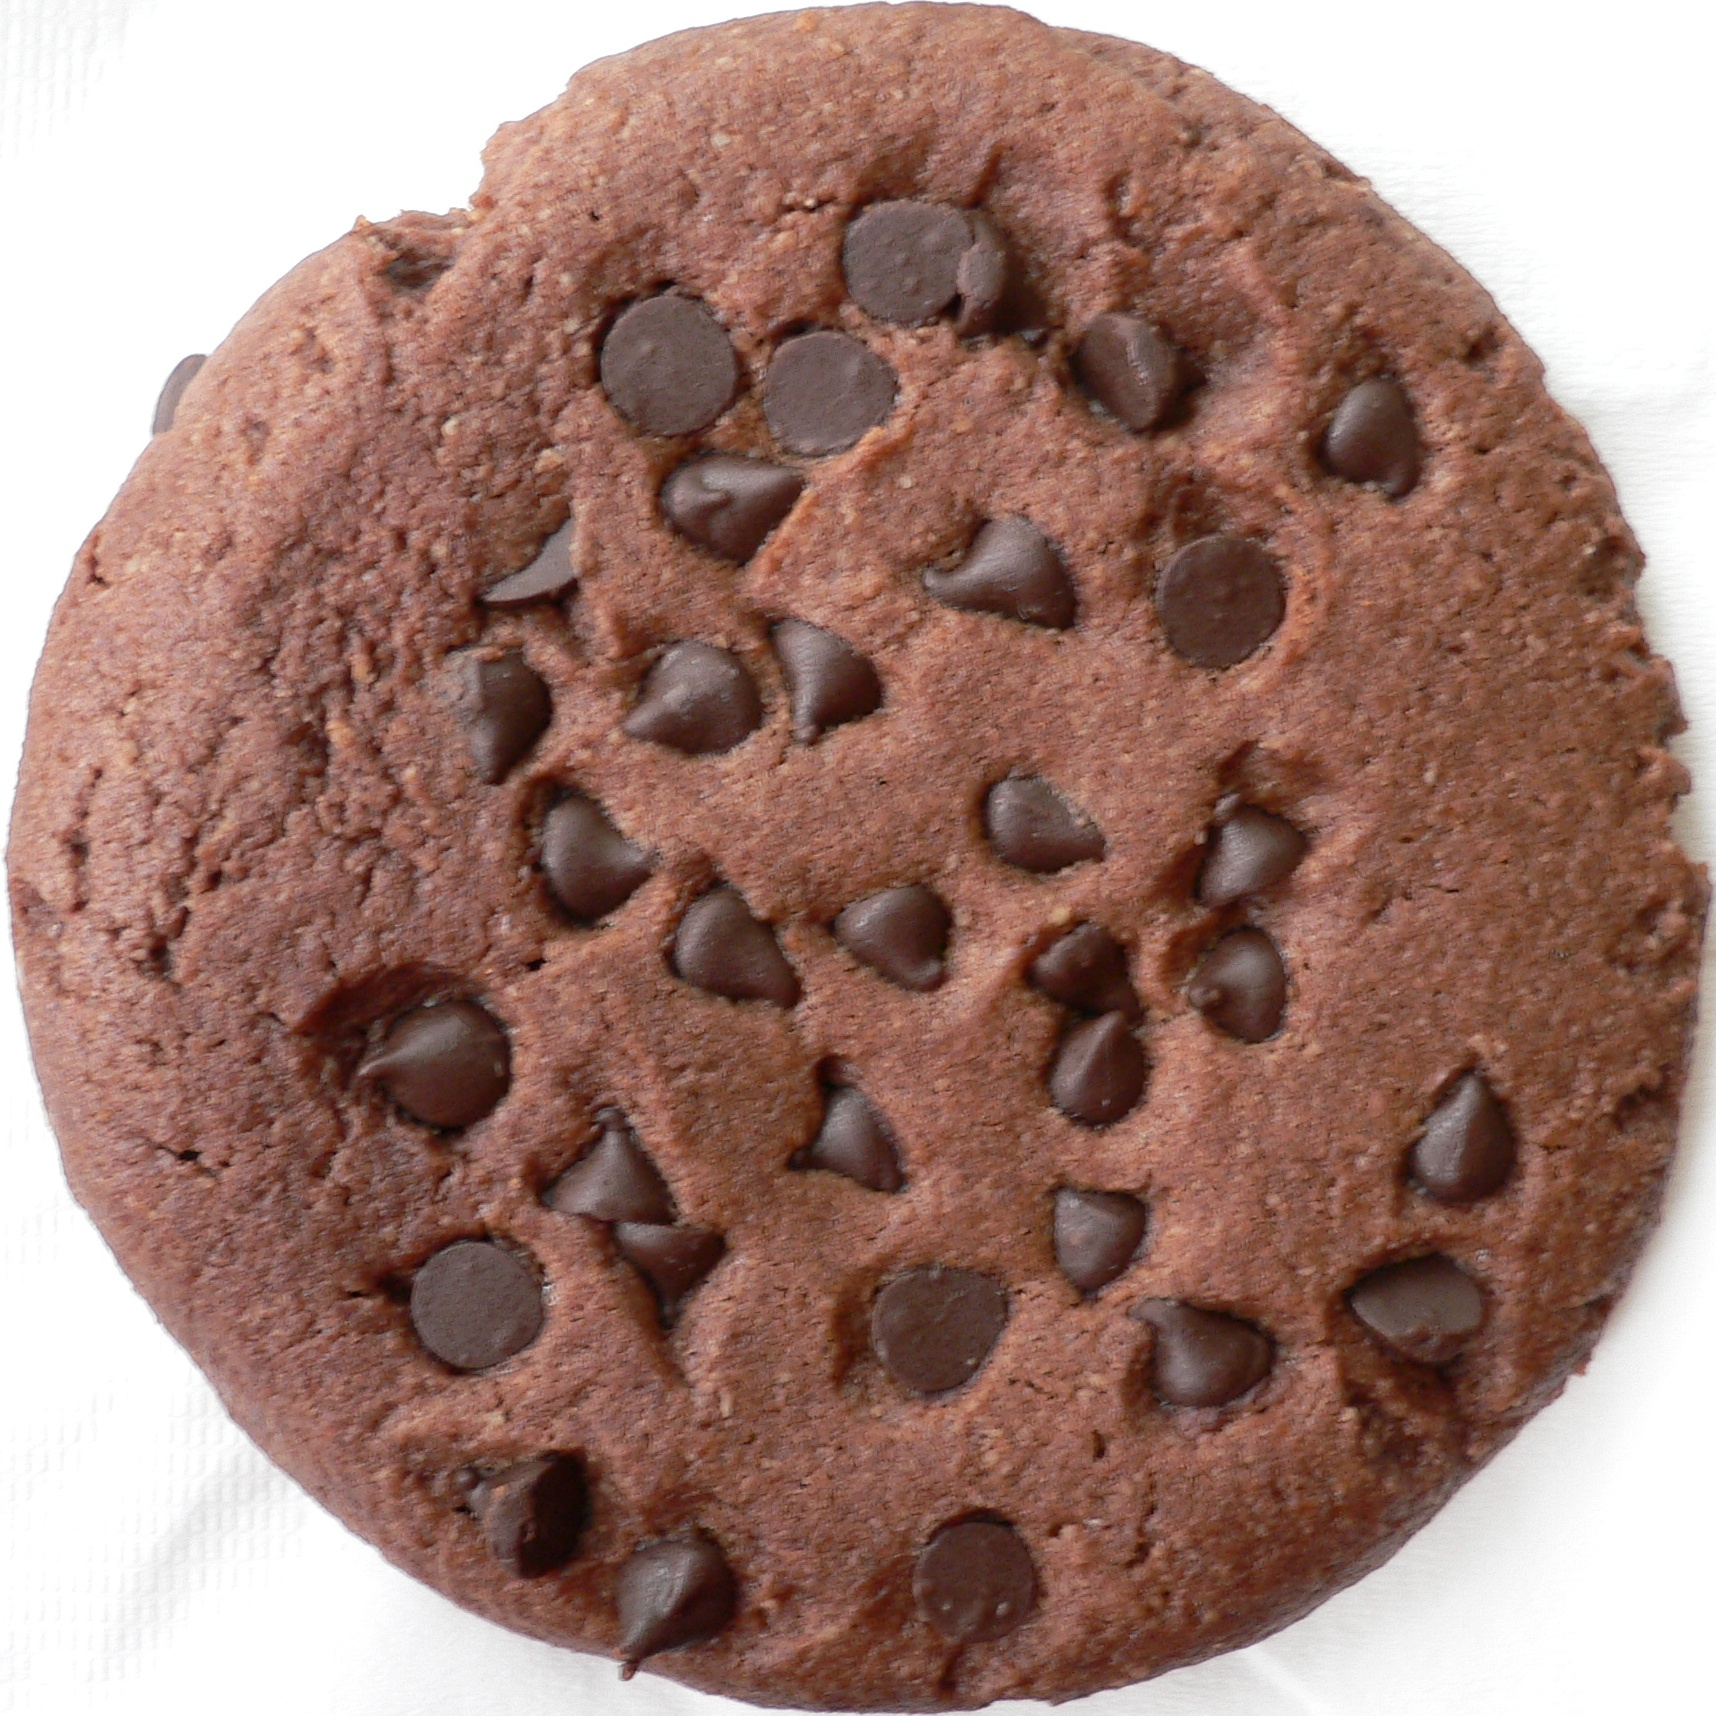 When Was The Chocolate Cookie Invented